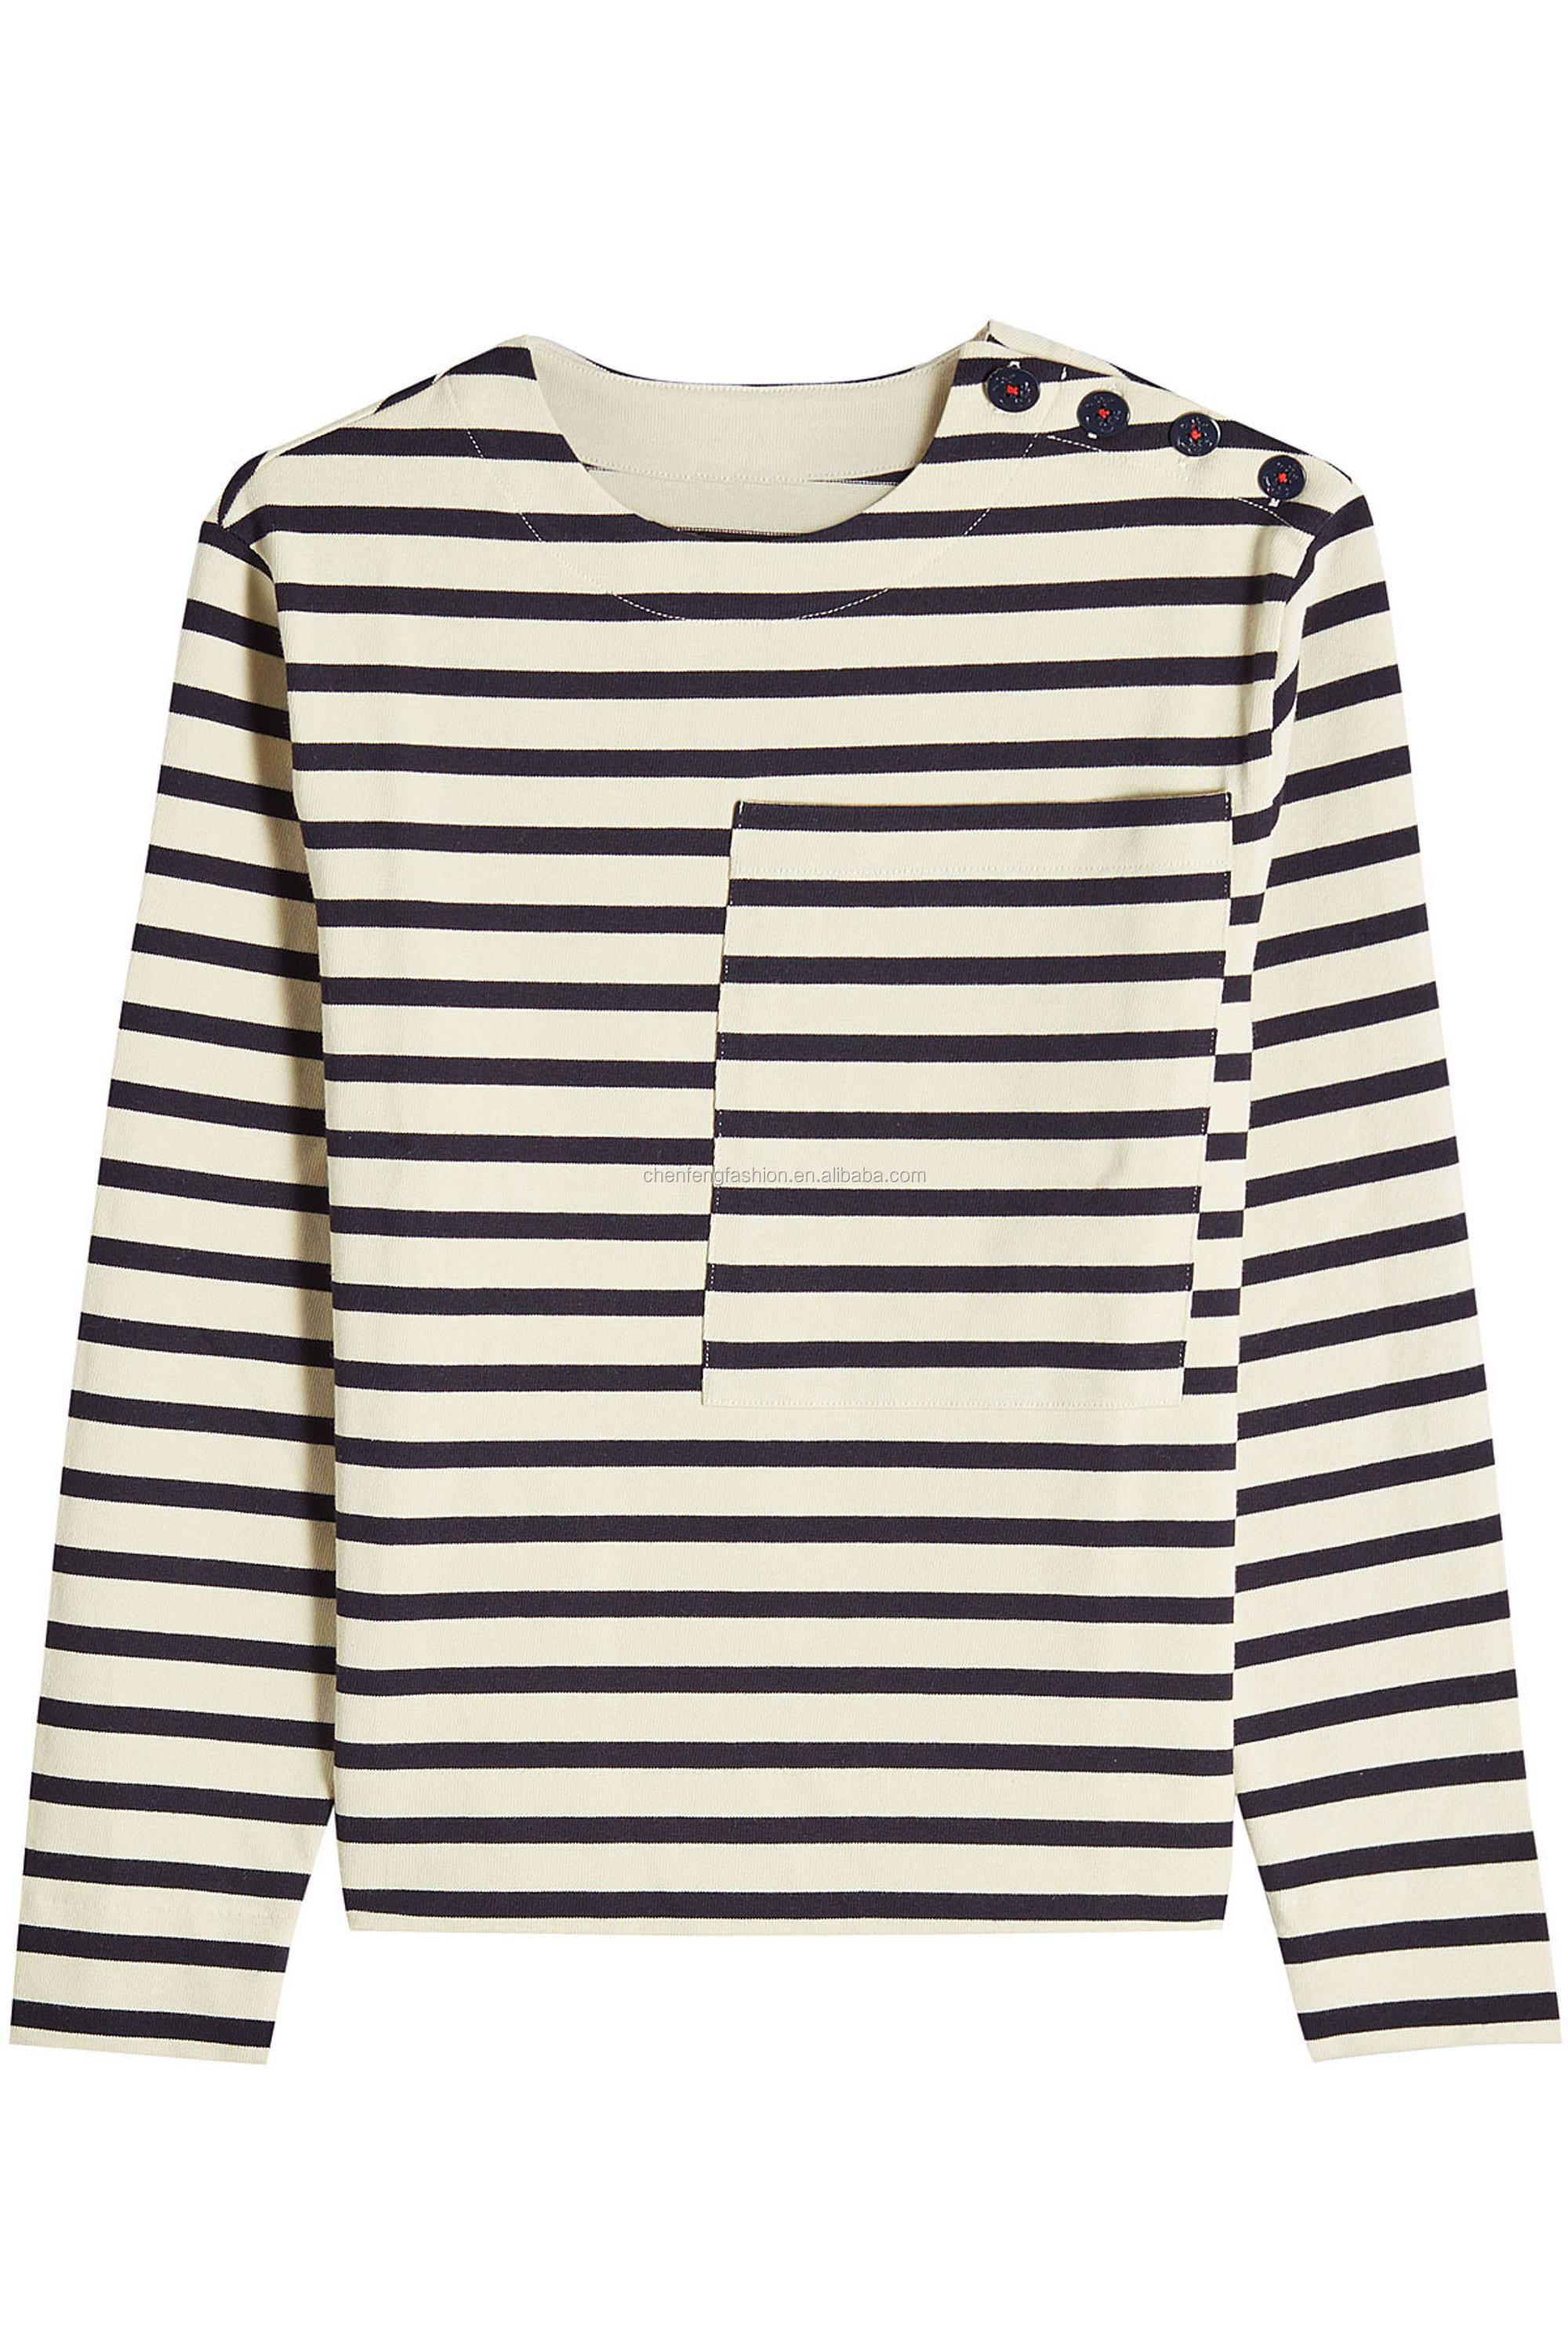 Scoop Neck Long Sleeves Striped Knitted 100% Cotton Women Top